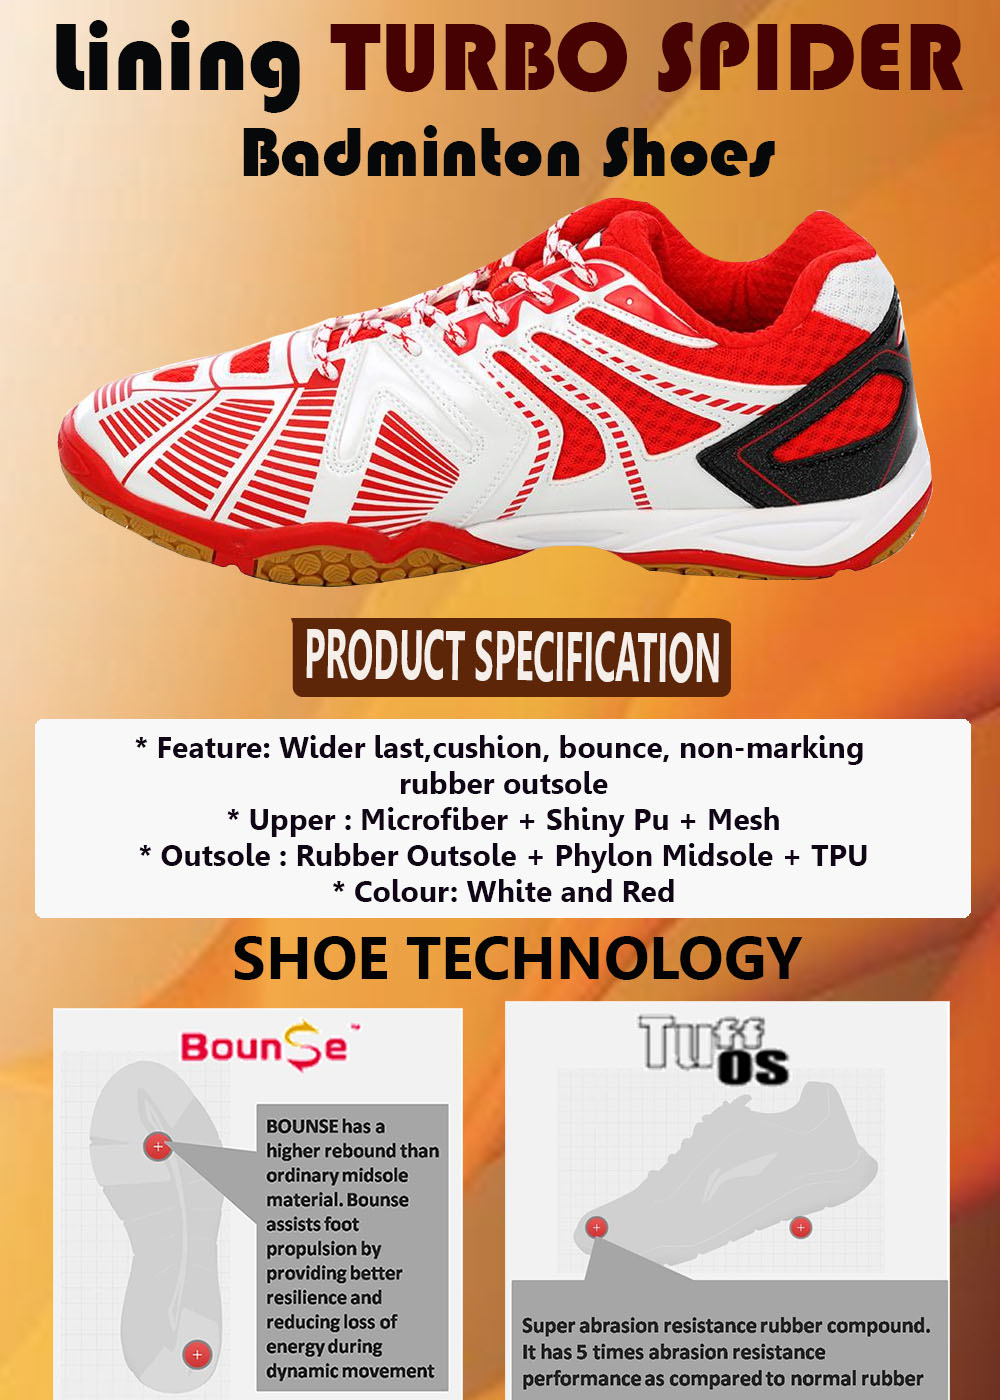 LINING TURBO SPIDER BADMINTON SHOES_5